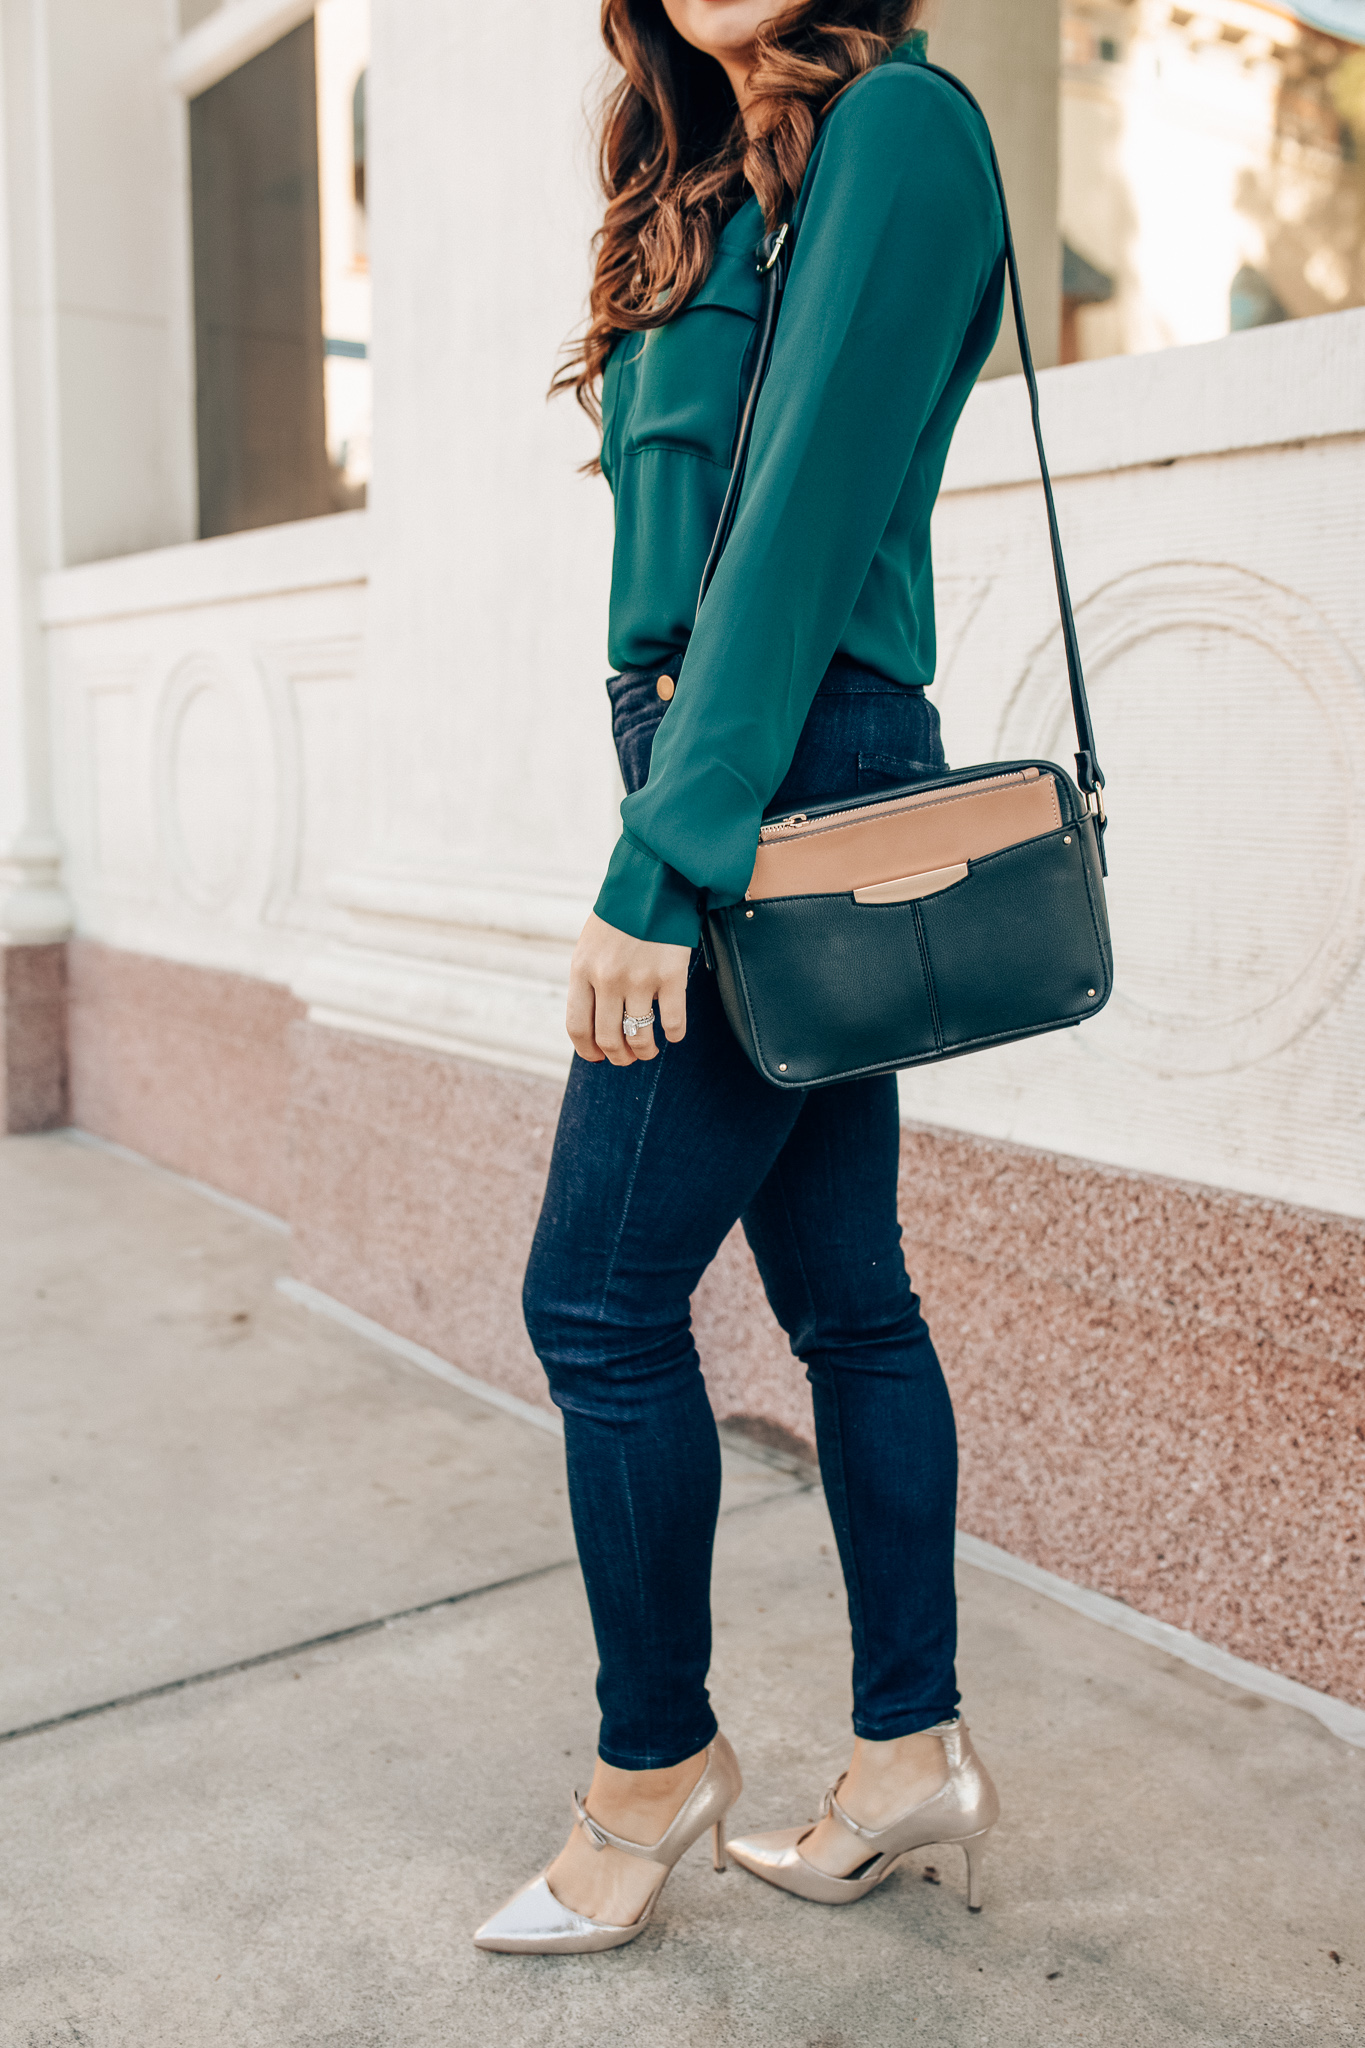 Winter workwear featured by top Orange County fashion blogger, Maxie Elise: image of a woman wearing an Ann Taylor green slim shirt, Ann Taylor skinny jeans, Ann Taylor metallic leather pumps and Ann Taylor camera bag